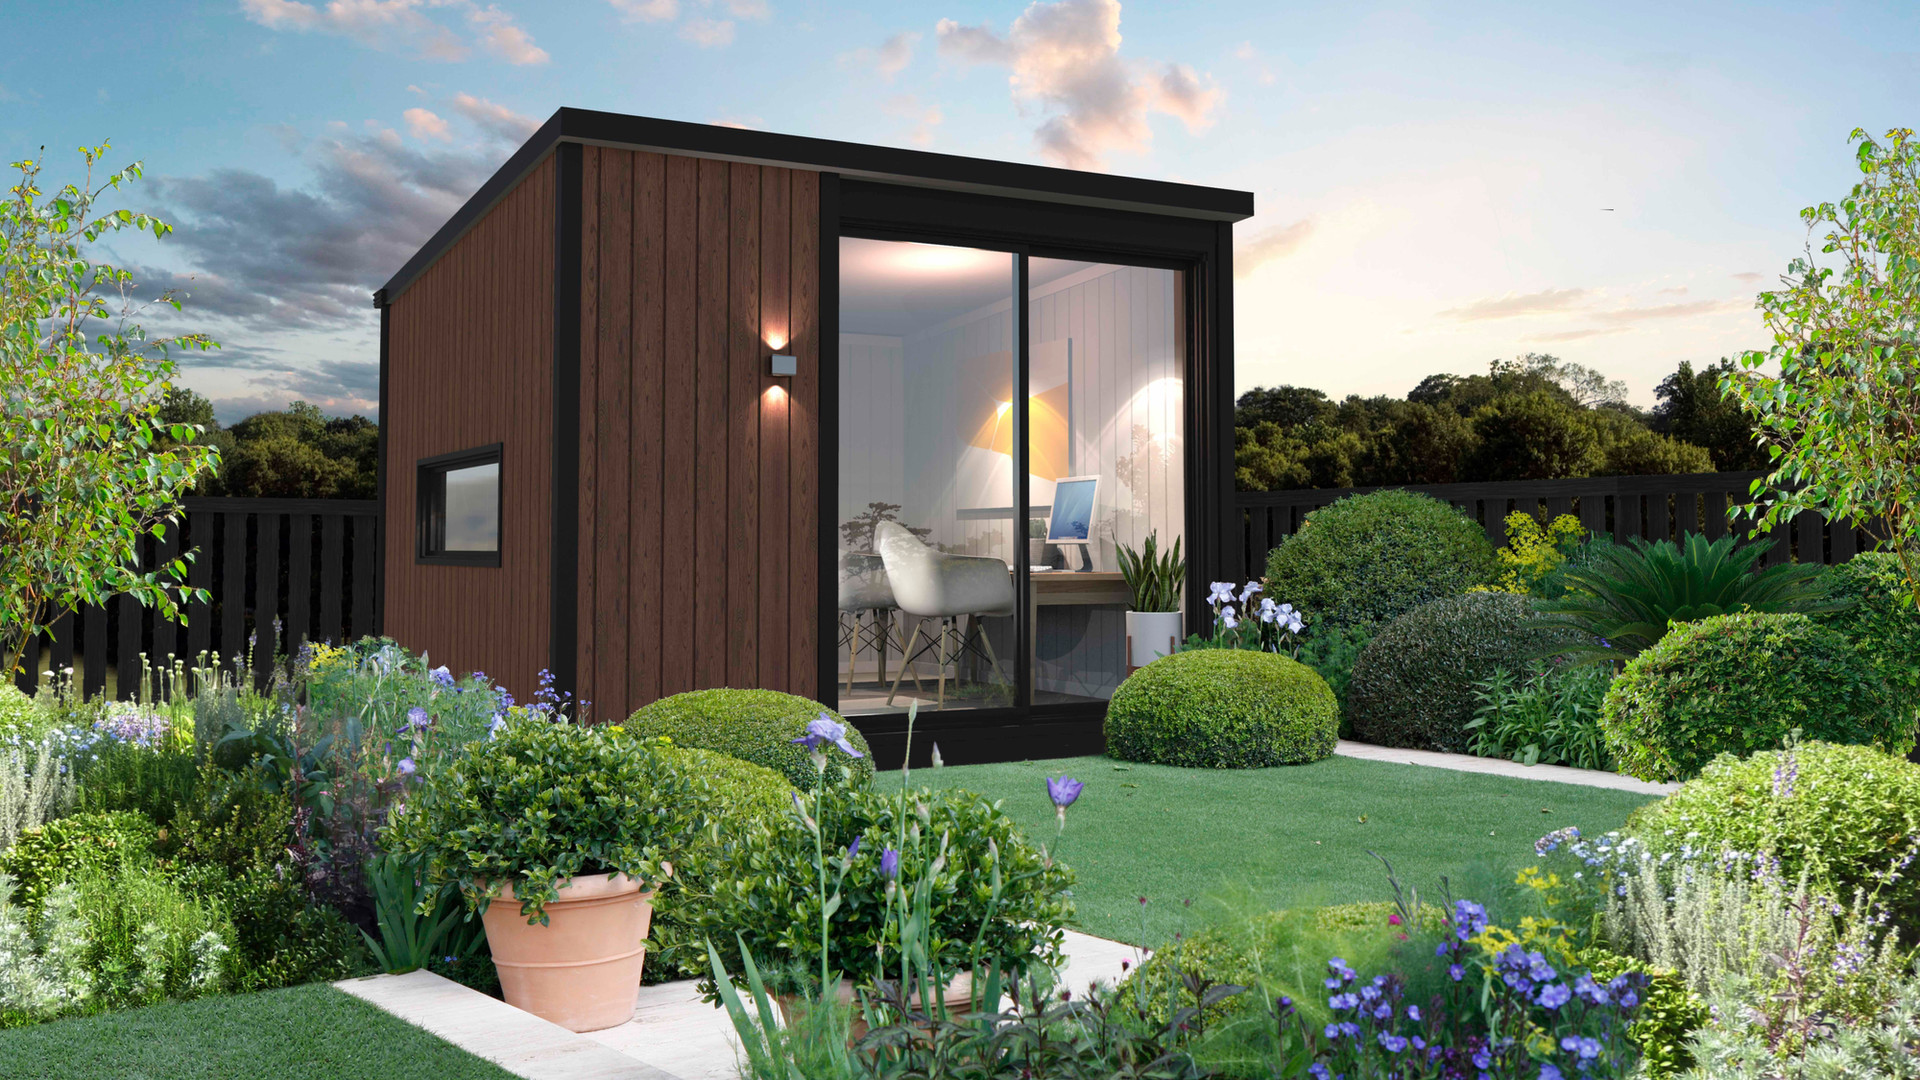 inoutside garden office - 3.6x3.6m Cabin design